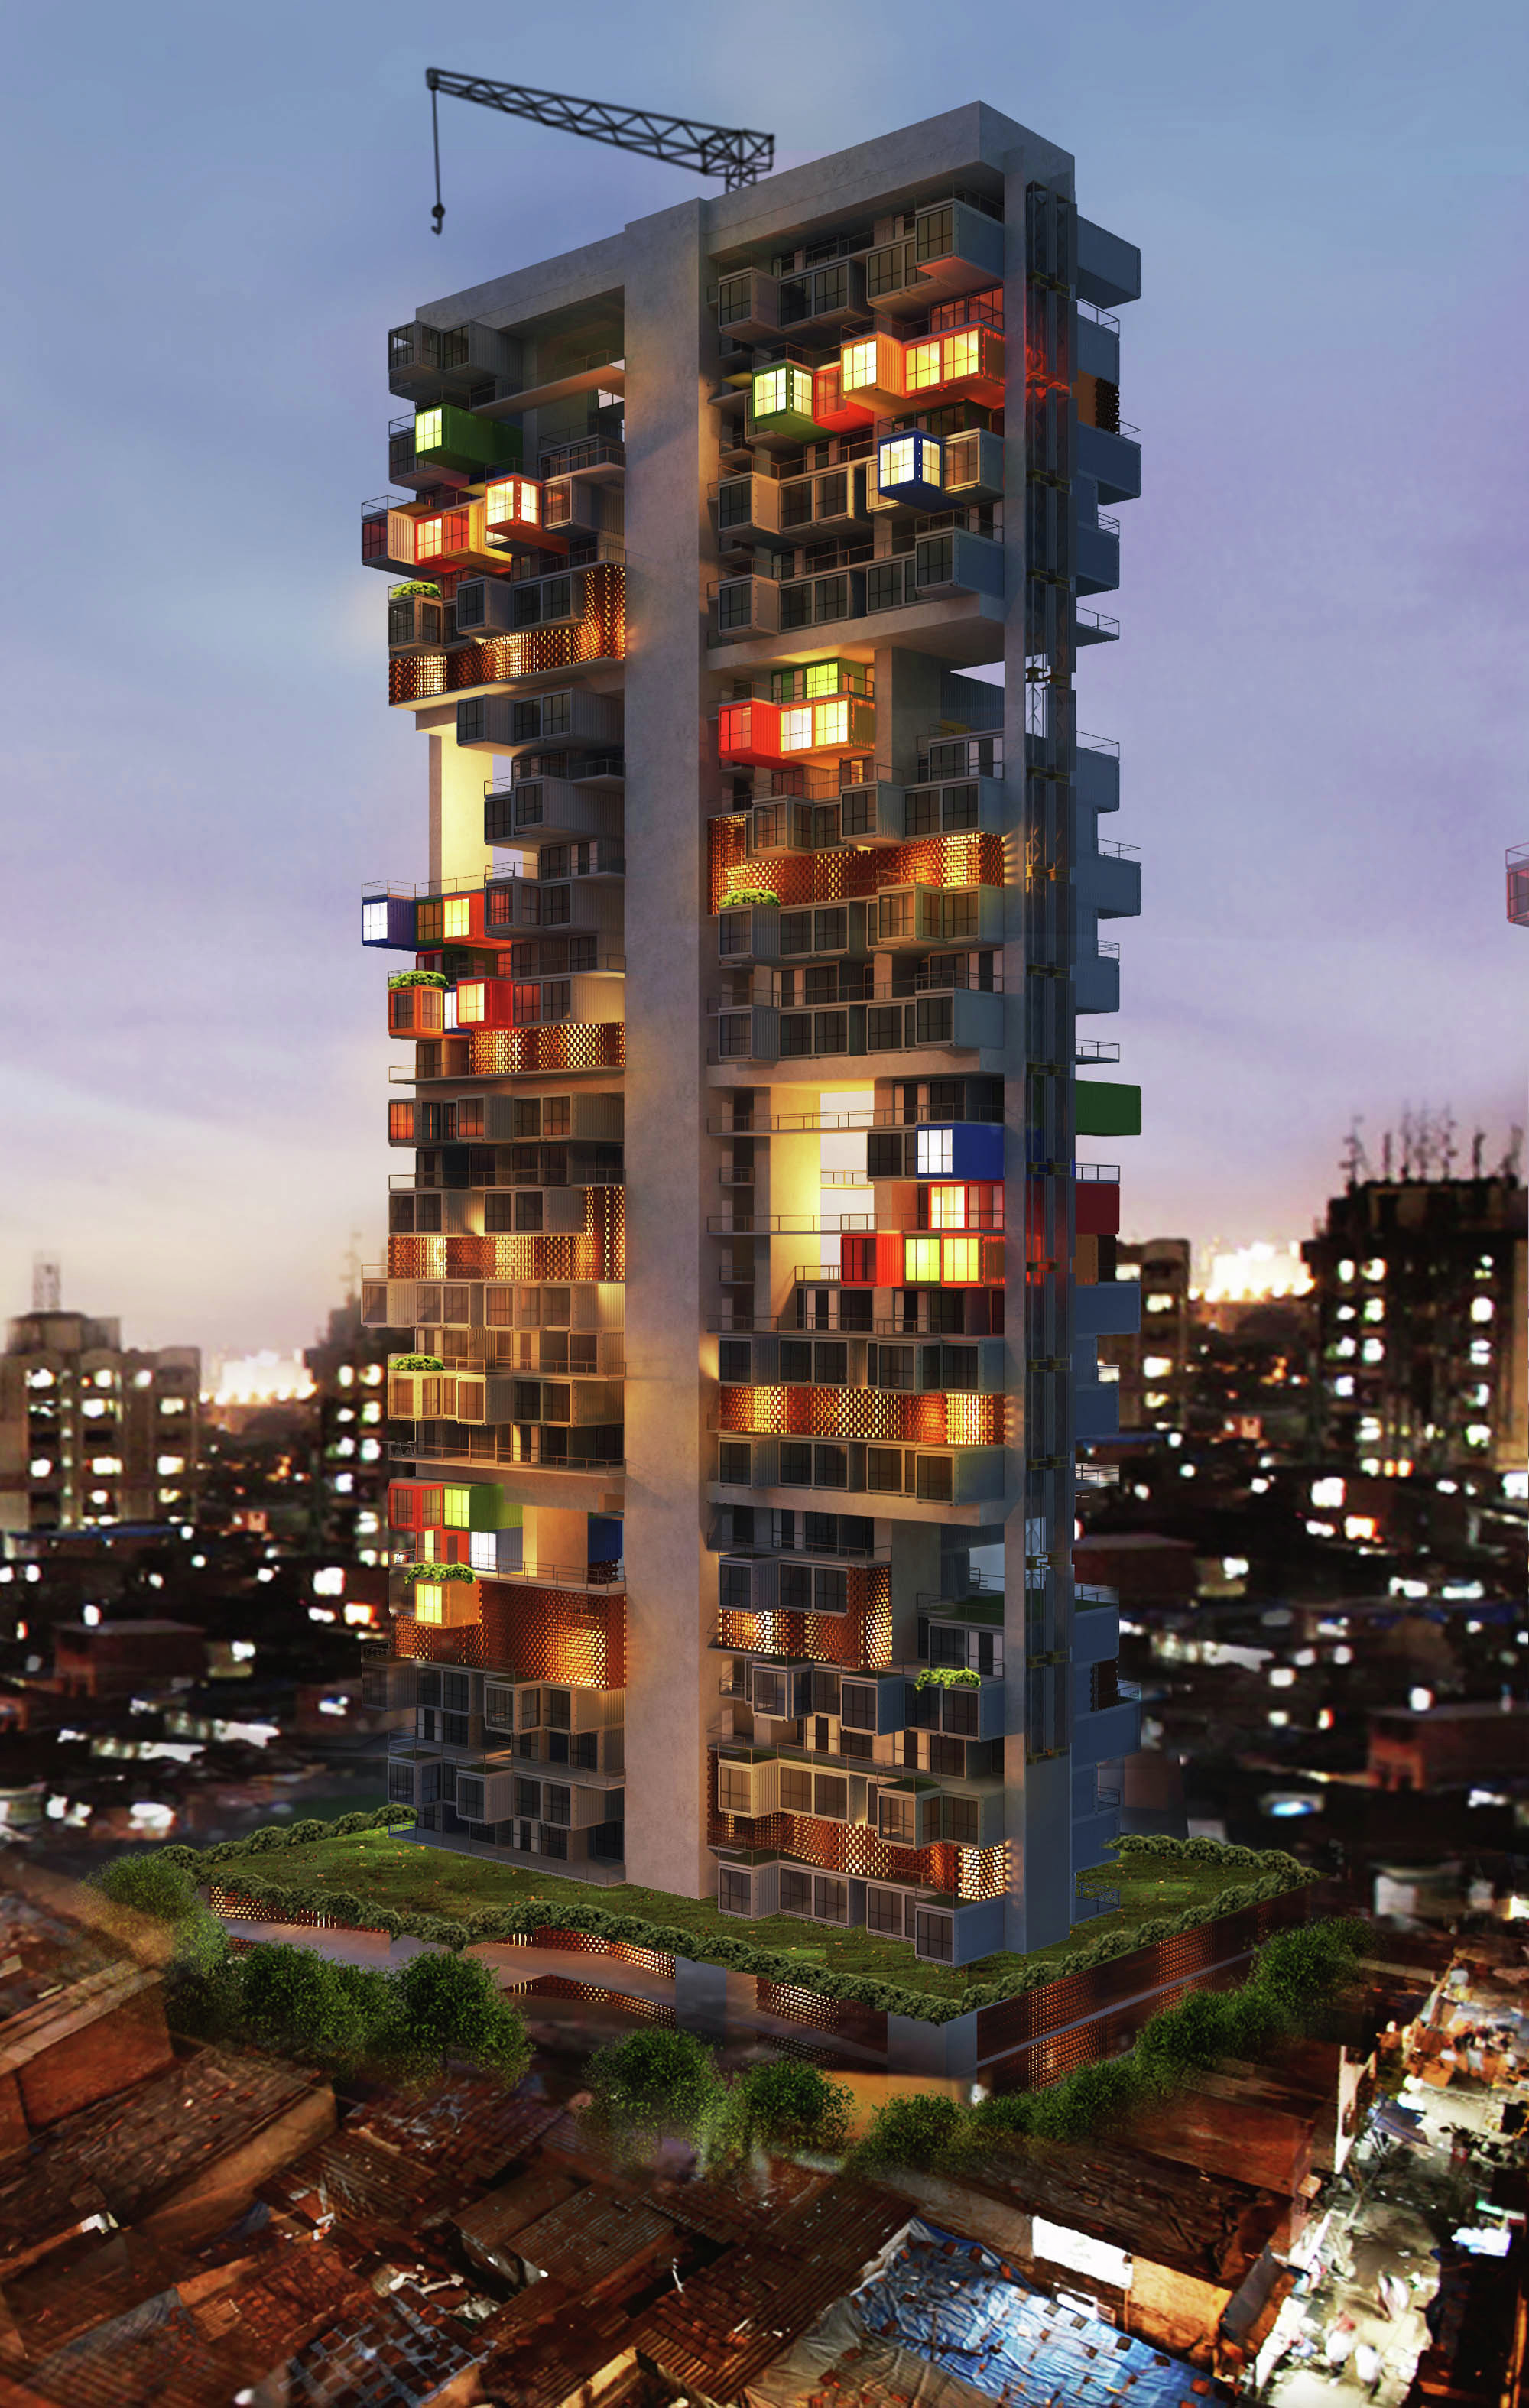 Container Building ga designs radical shipping container skyscraper for mumbai slum